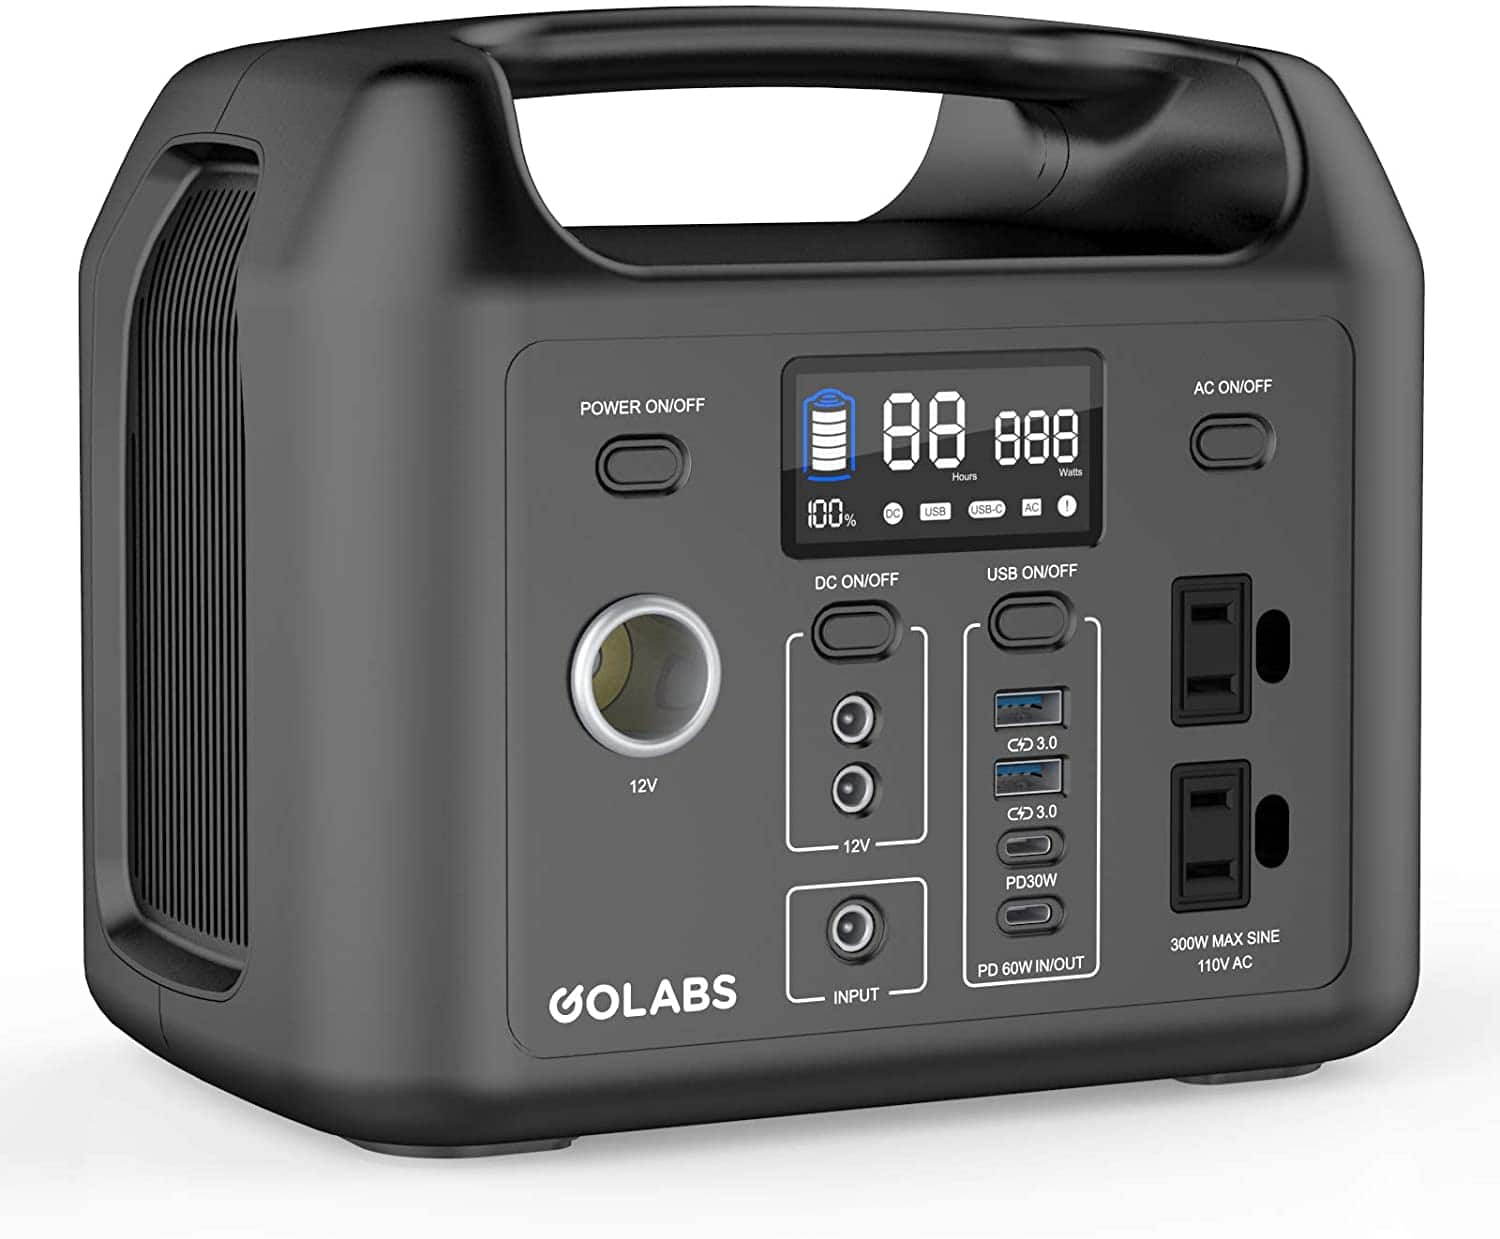 GOLABS Portable Power Station, 299Wh LiFePO4 Battery Backup $199.98